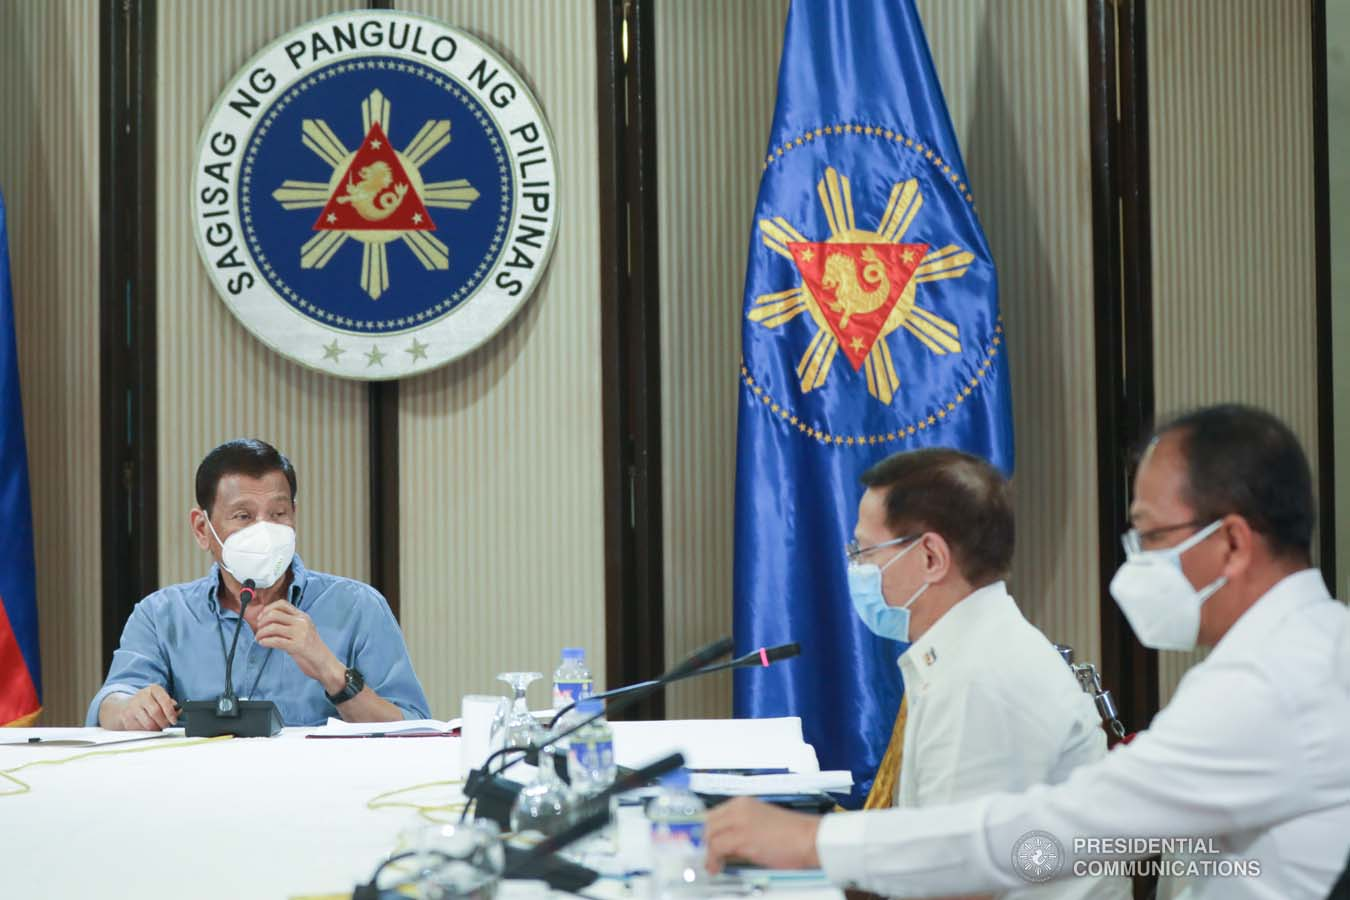 President Rodrigo Roa Duterte holds a meeting with some members of the Inter-Agency Task Force on the Emerging Infectious Diseases (IATF-EID) at the Malago Clubhouse in Malacañang on April 8, 2020. TOTO LOZANO/PRESIDENTIAL PHOTO